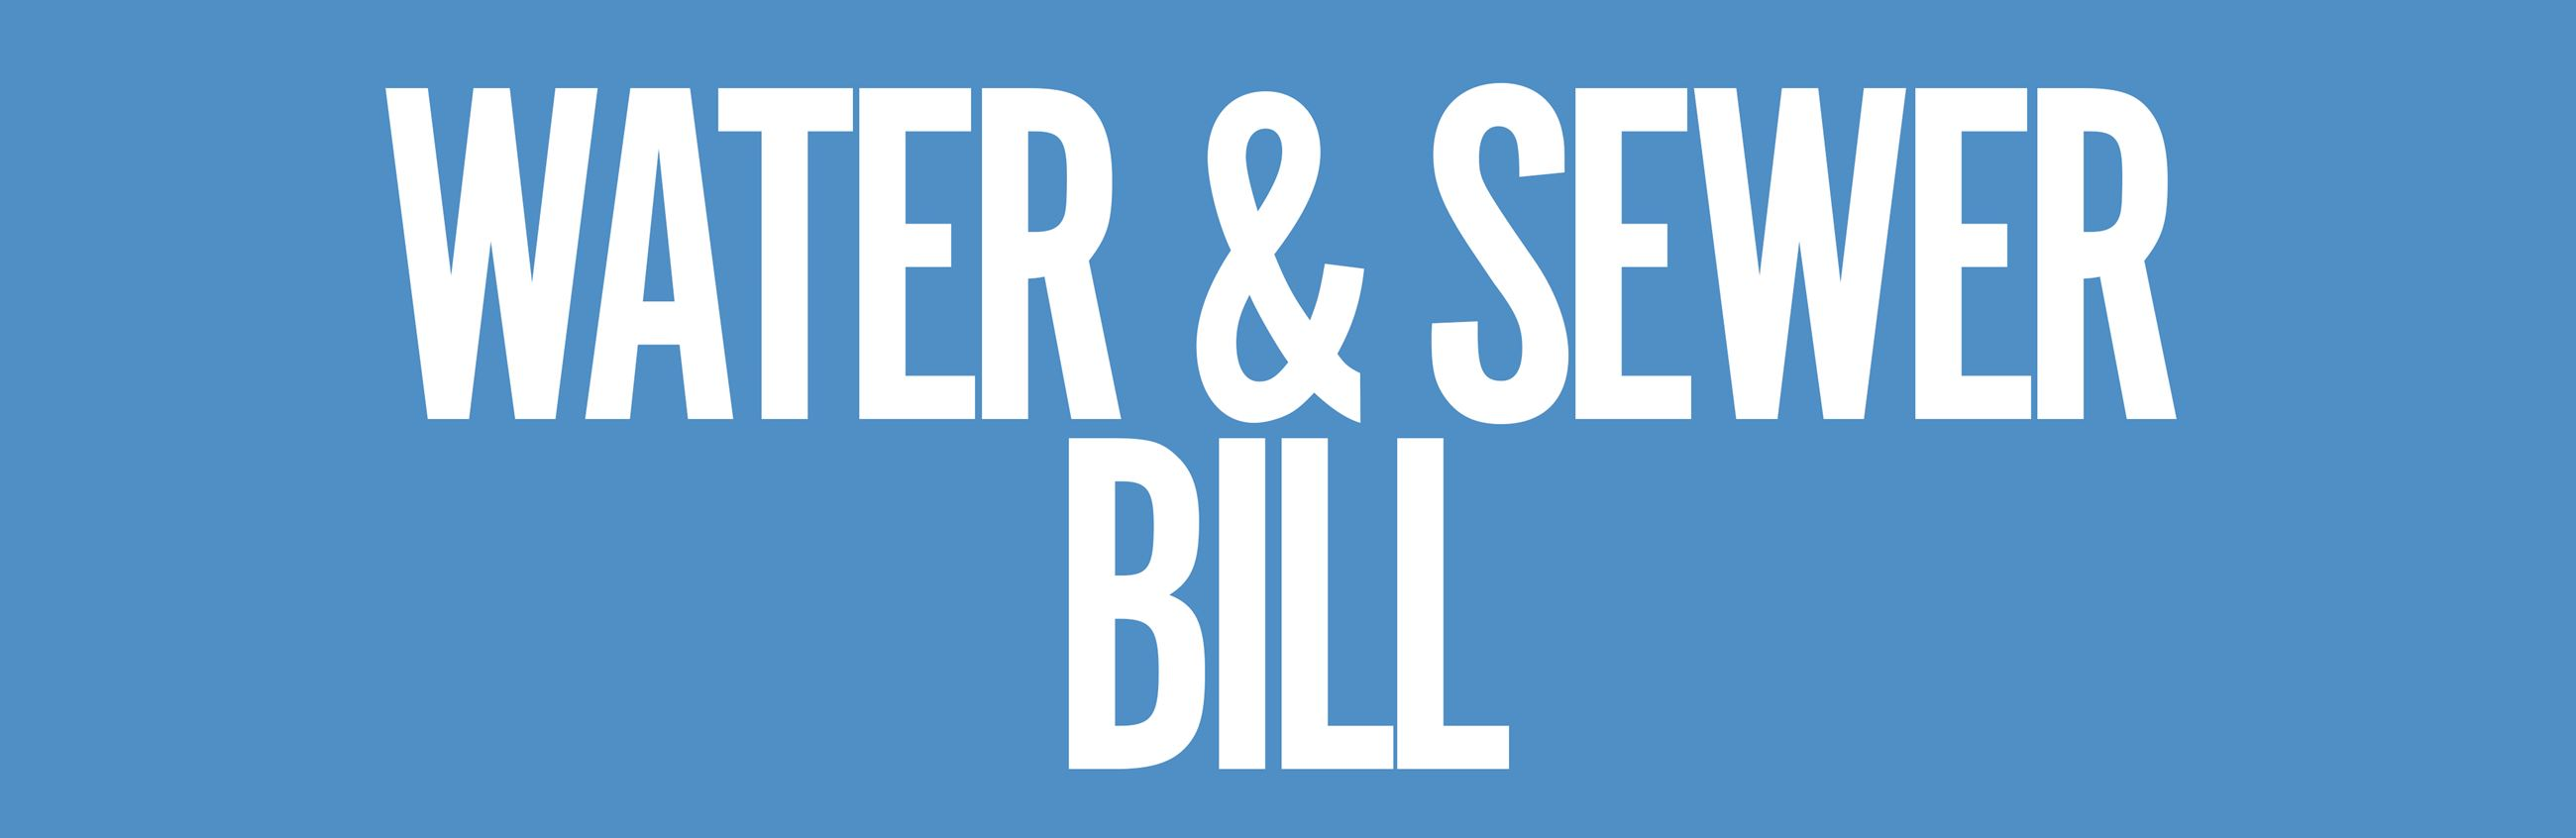 Pay Water & Sewer Bill